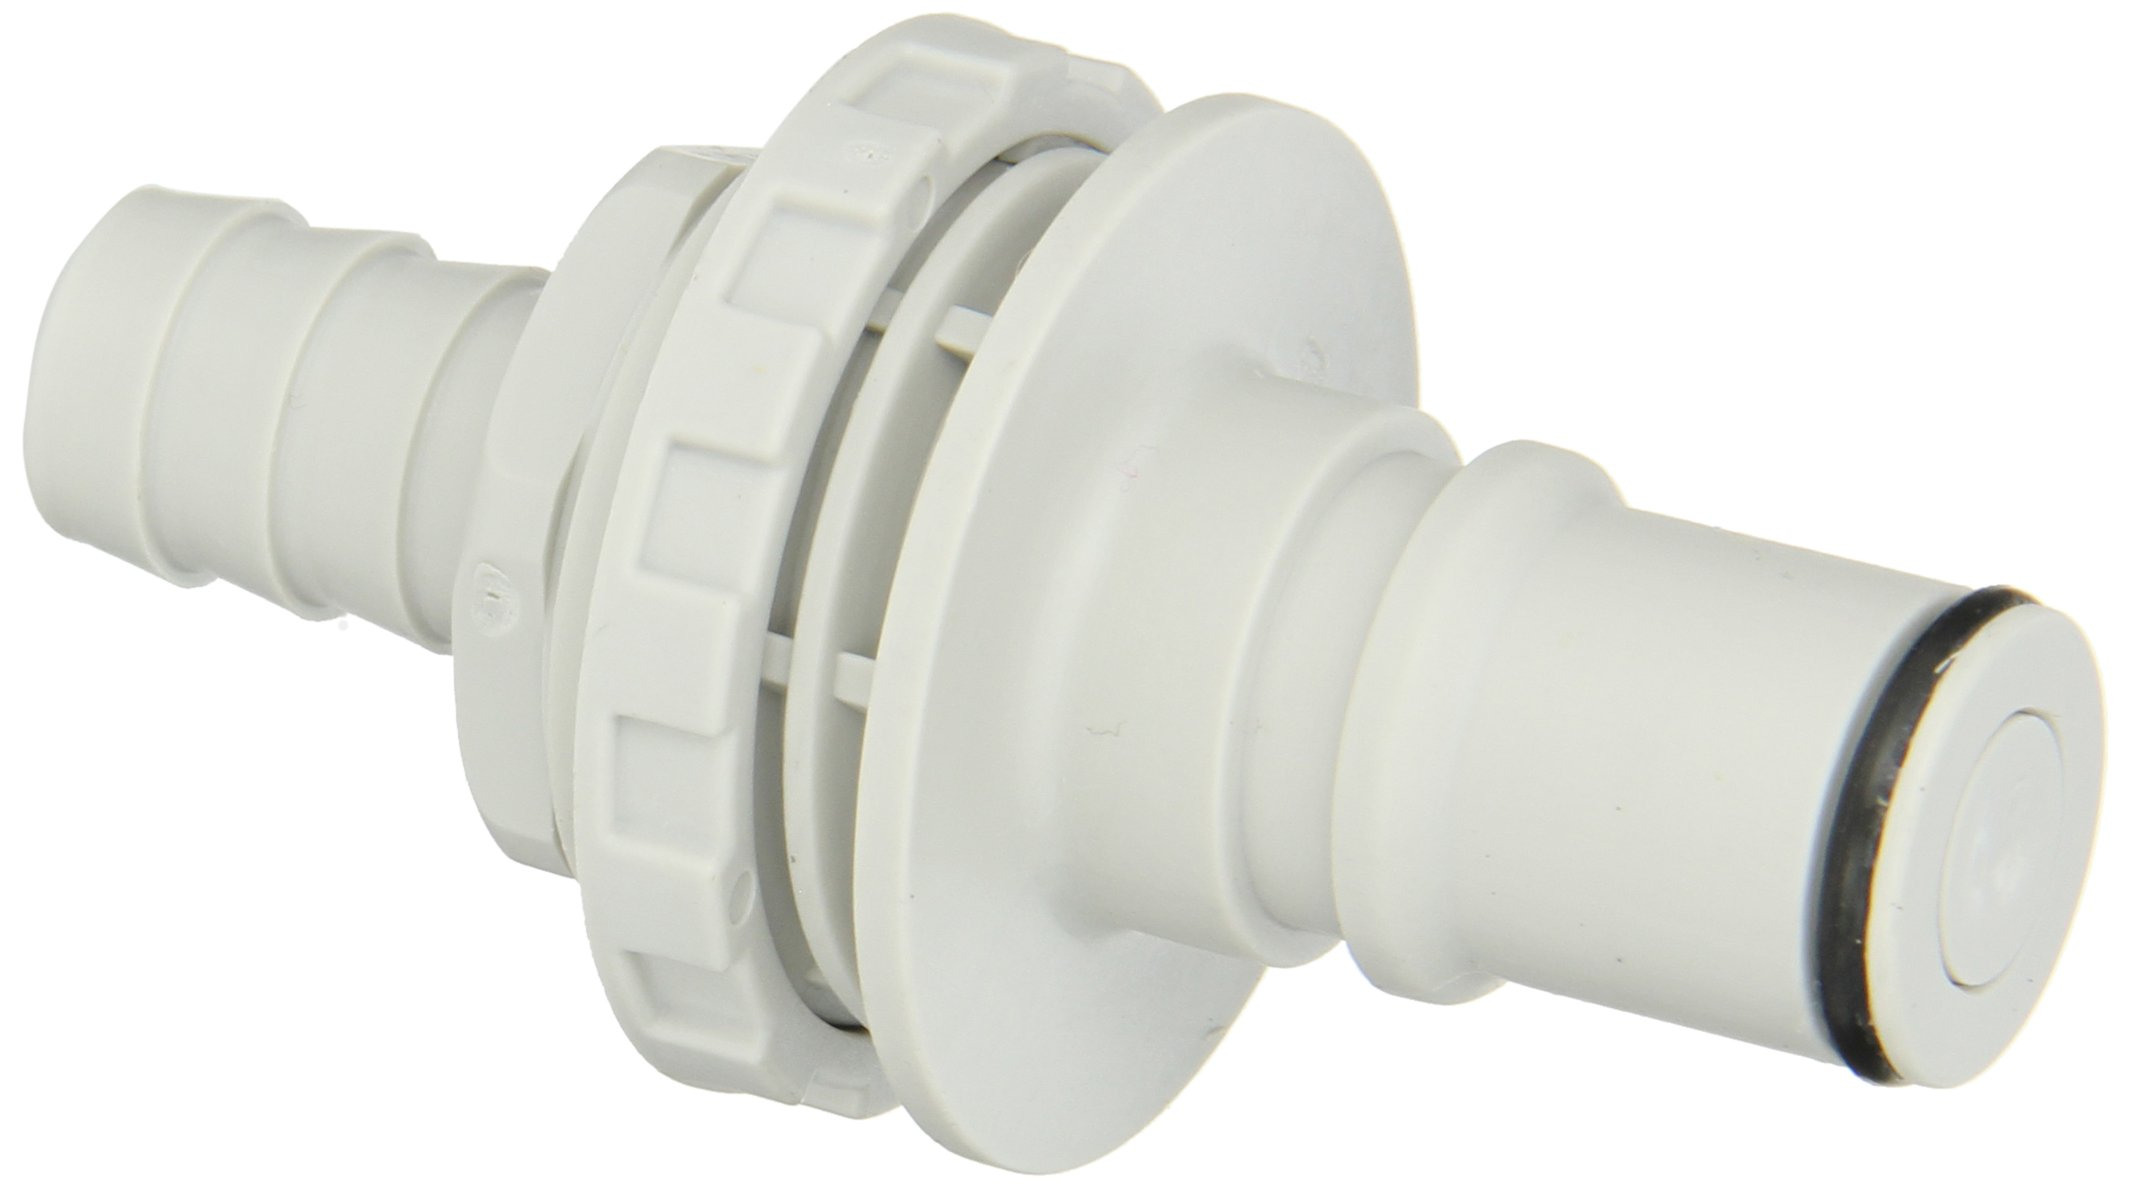 Colder NS6D42008 Polypropylene Tube Fitting, Insert, Shutoff, Panel Mount, 3/8'' Insert x 1/2'' Barb by Colder Products Company